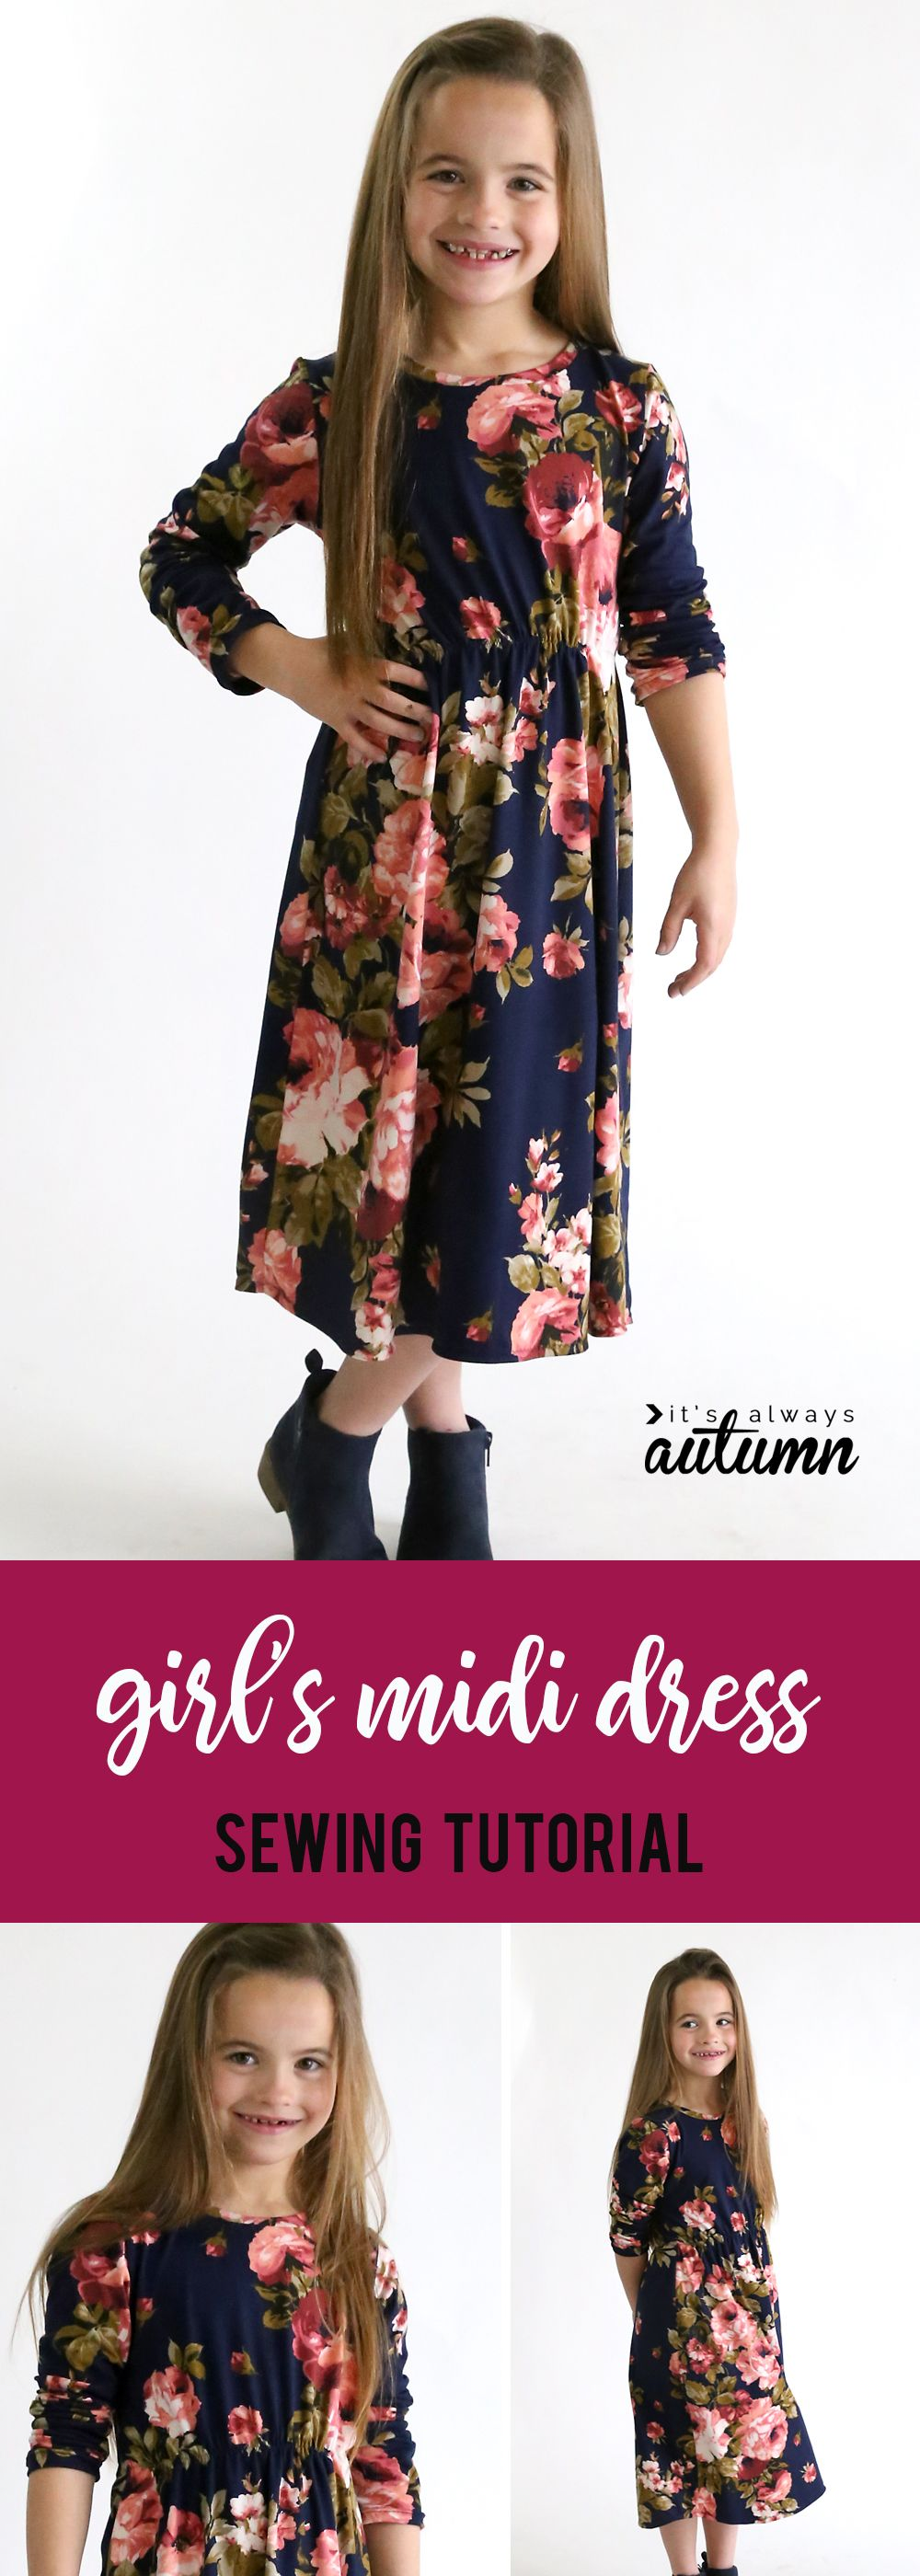 How to make a cute midi dress for a girl in any size without a pattern! Easy sewing tutorial. #itsalwaysautumn #sewing #sewingpattern